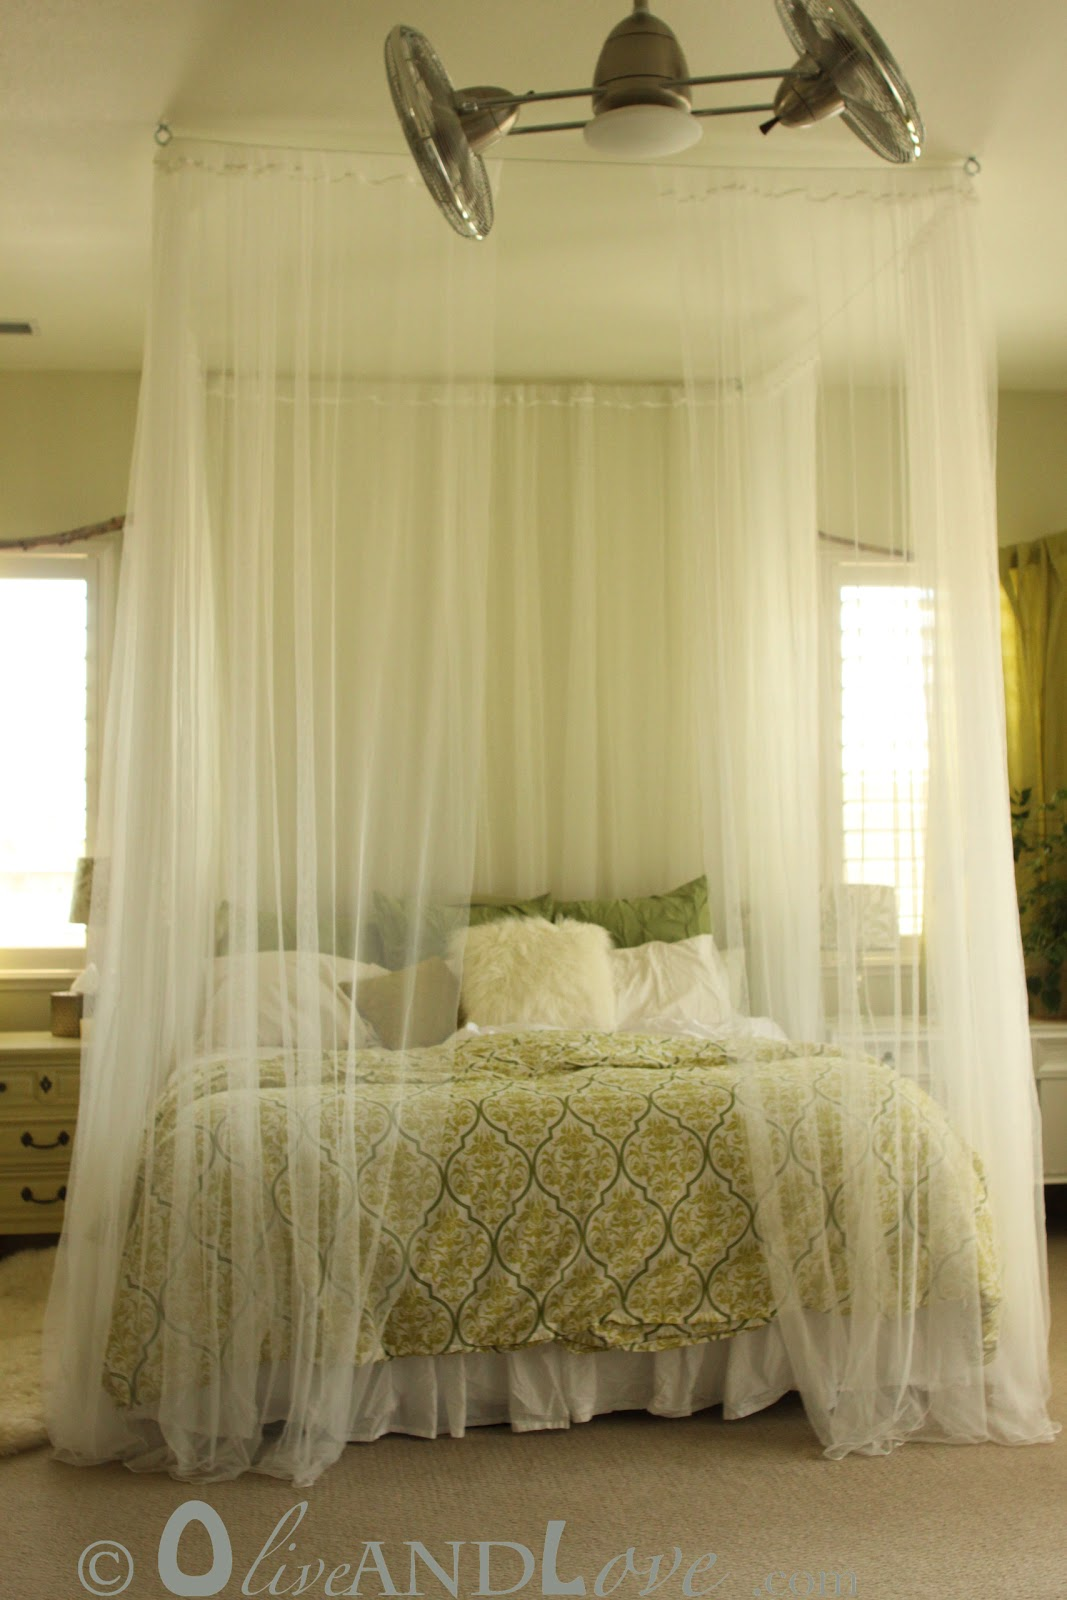 ceiling mounted bed canopy consisting of eyebolts turn buckles and